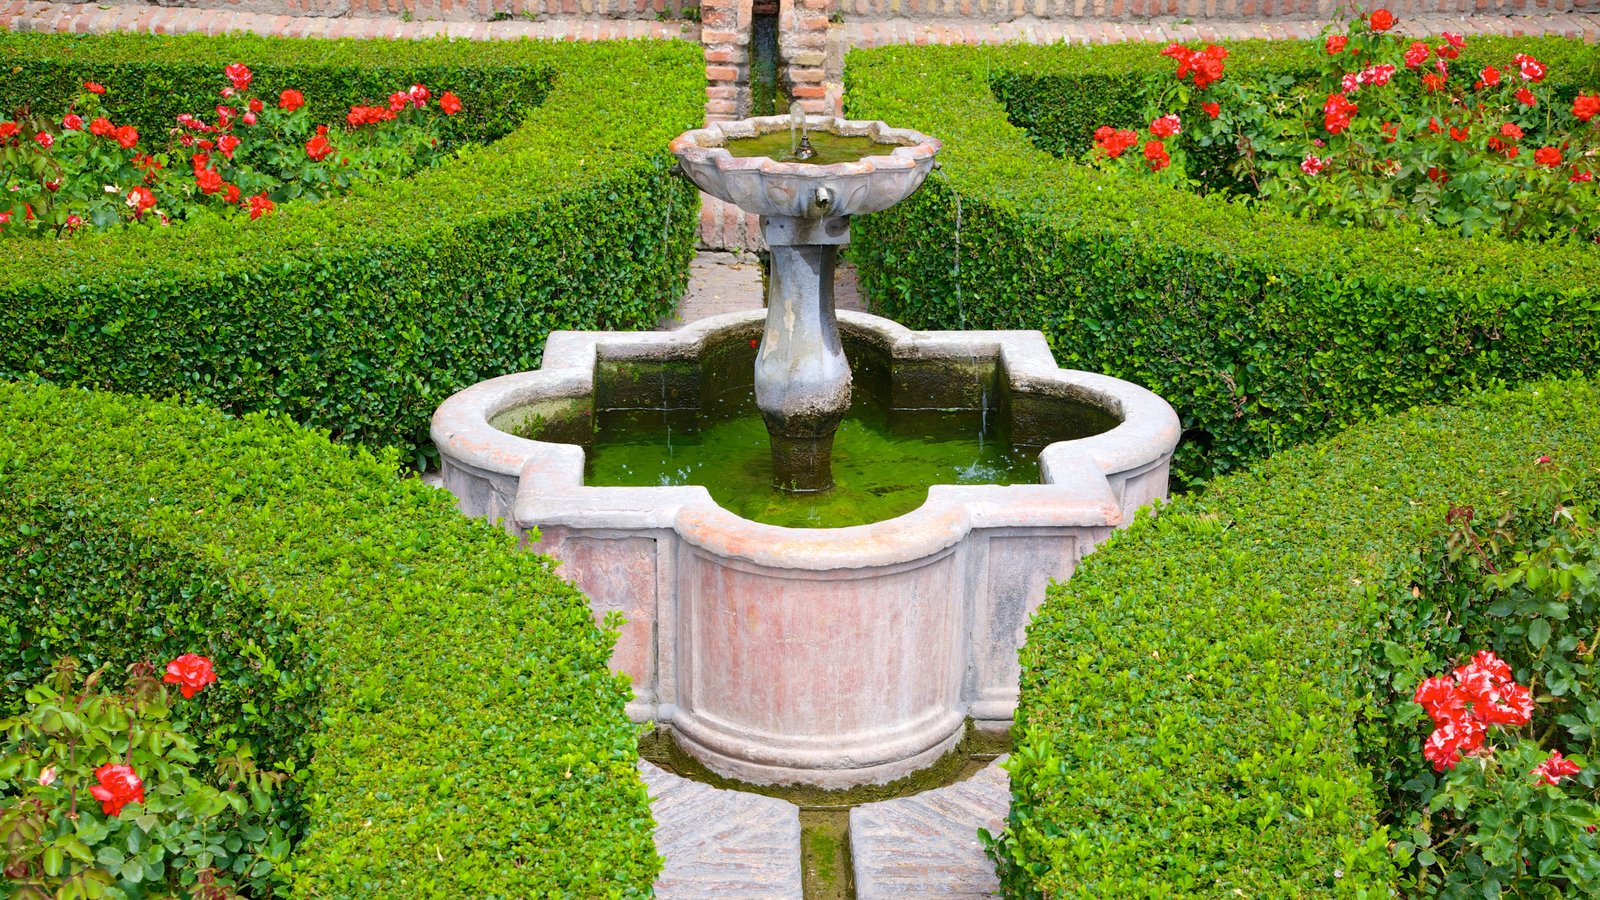 Alcazaba which includes a fountain, flowers and a garden